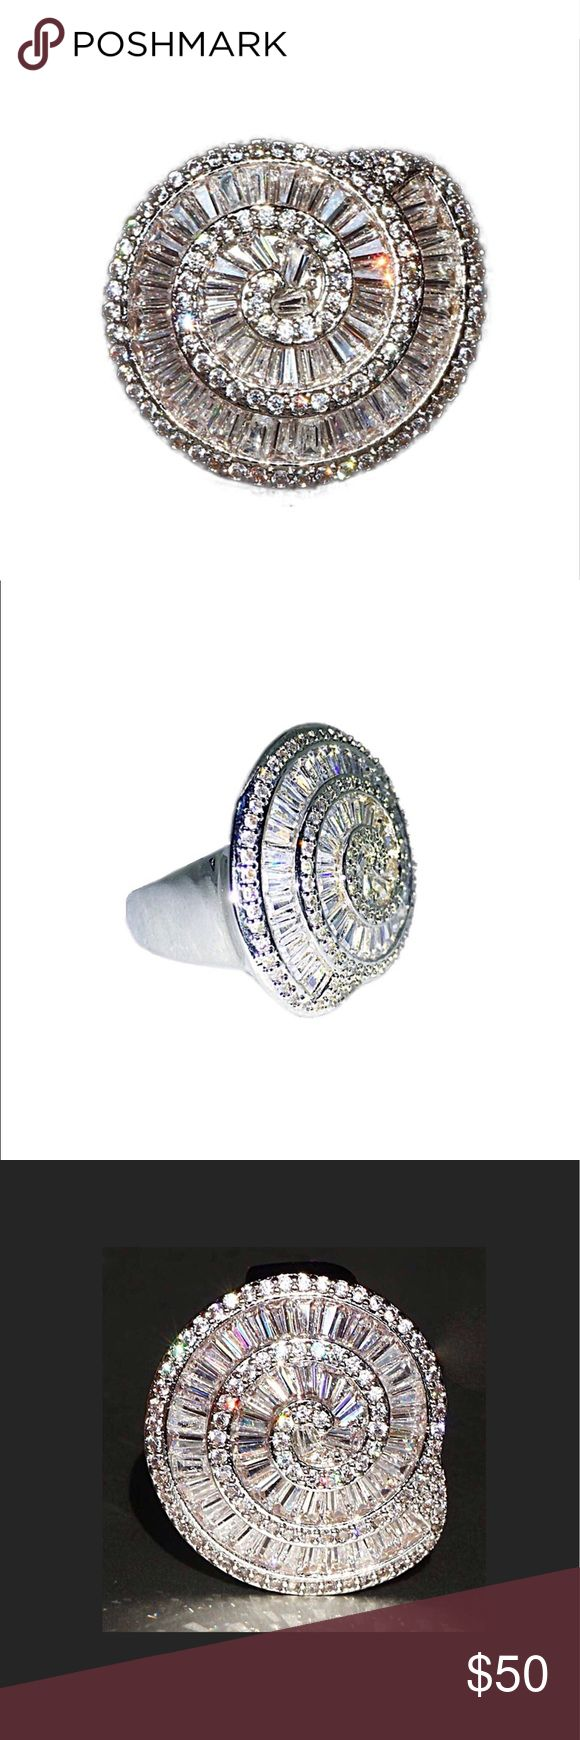 "STUNNING .925 Silver and White Sapphire Ring NWT STUNNING .925 Silver and White Sapphire Ring NWT:  this ring is GORGEOUS.  White sapphires laid side-by-side in a conch-shell pattern for maximum shine.  Most definitely a ""statement"" ring!  Tends to run about 1/2 size large. Jewelry Rings"